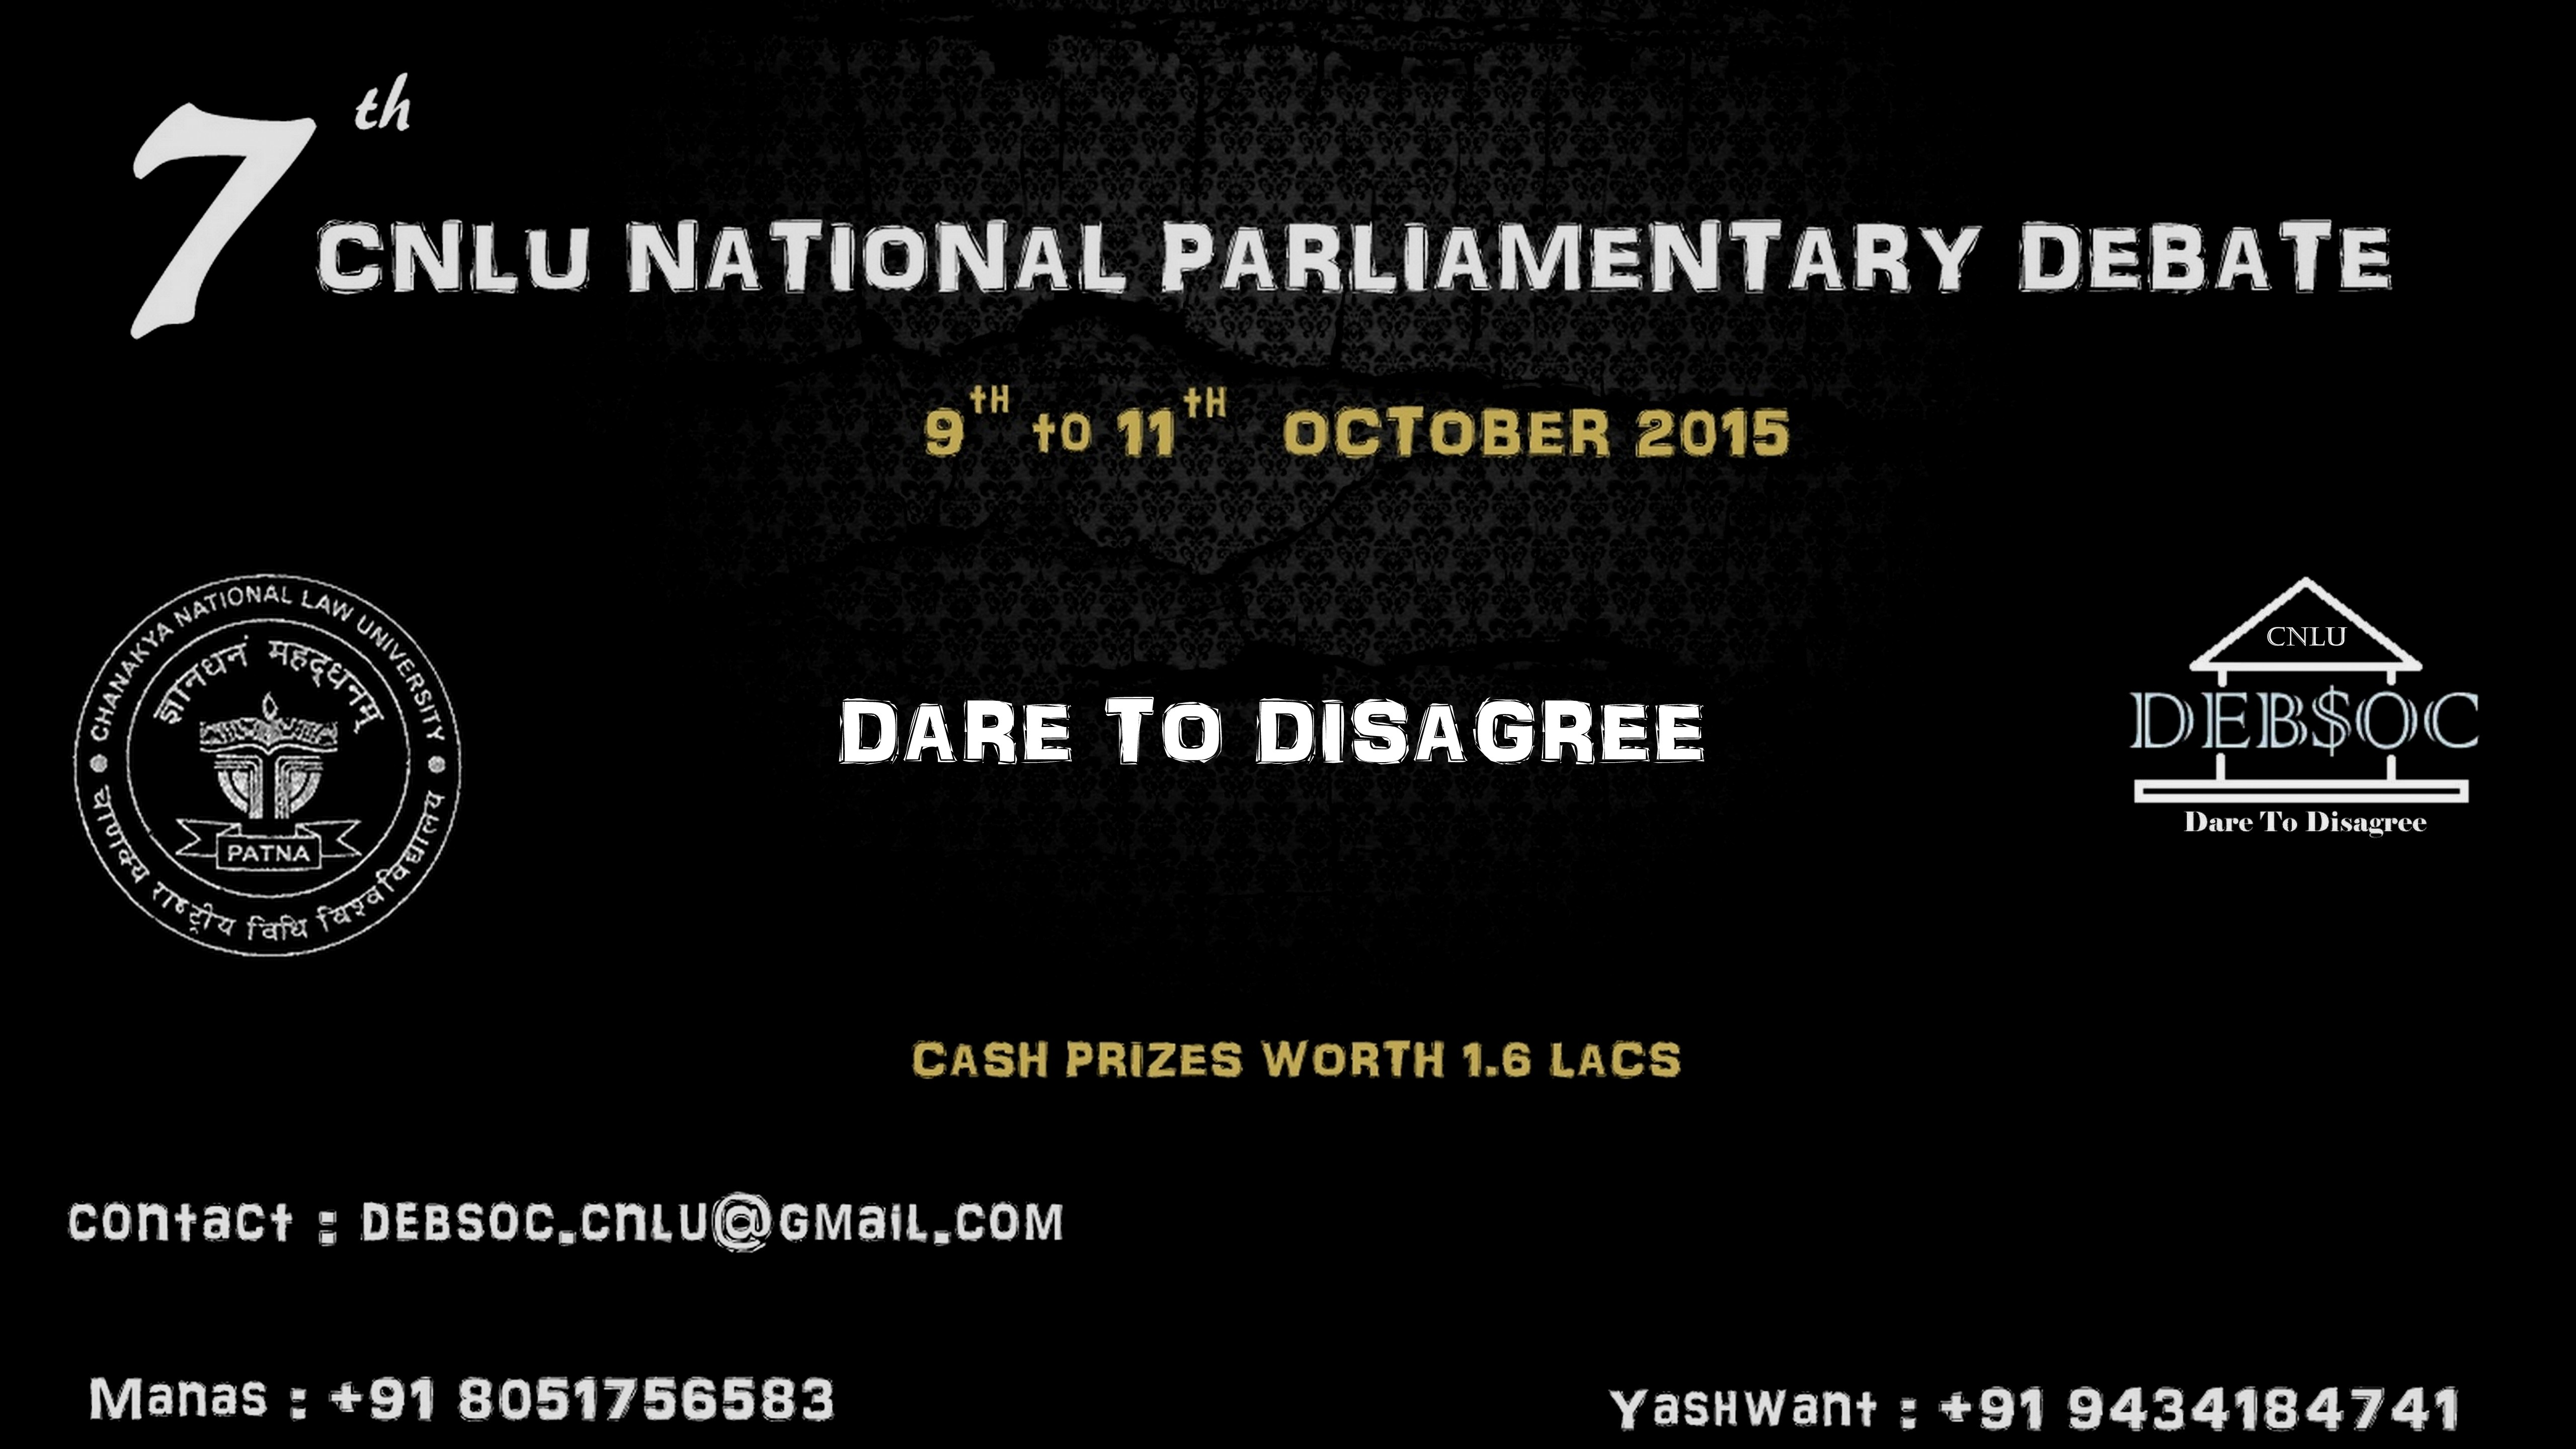 7th CNLU Parliamentry Debate 2015  [Oct 9-11]: Submit by Sep 19